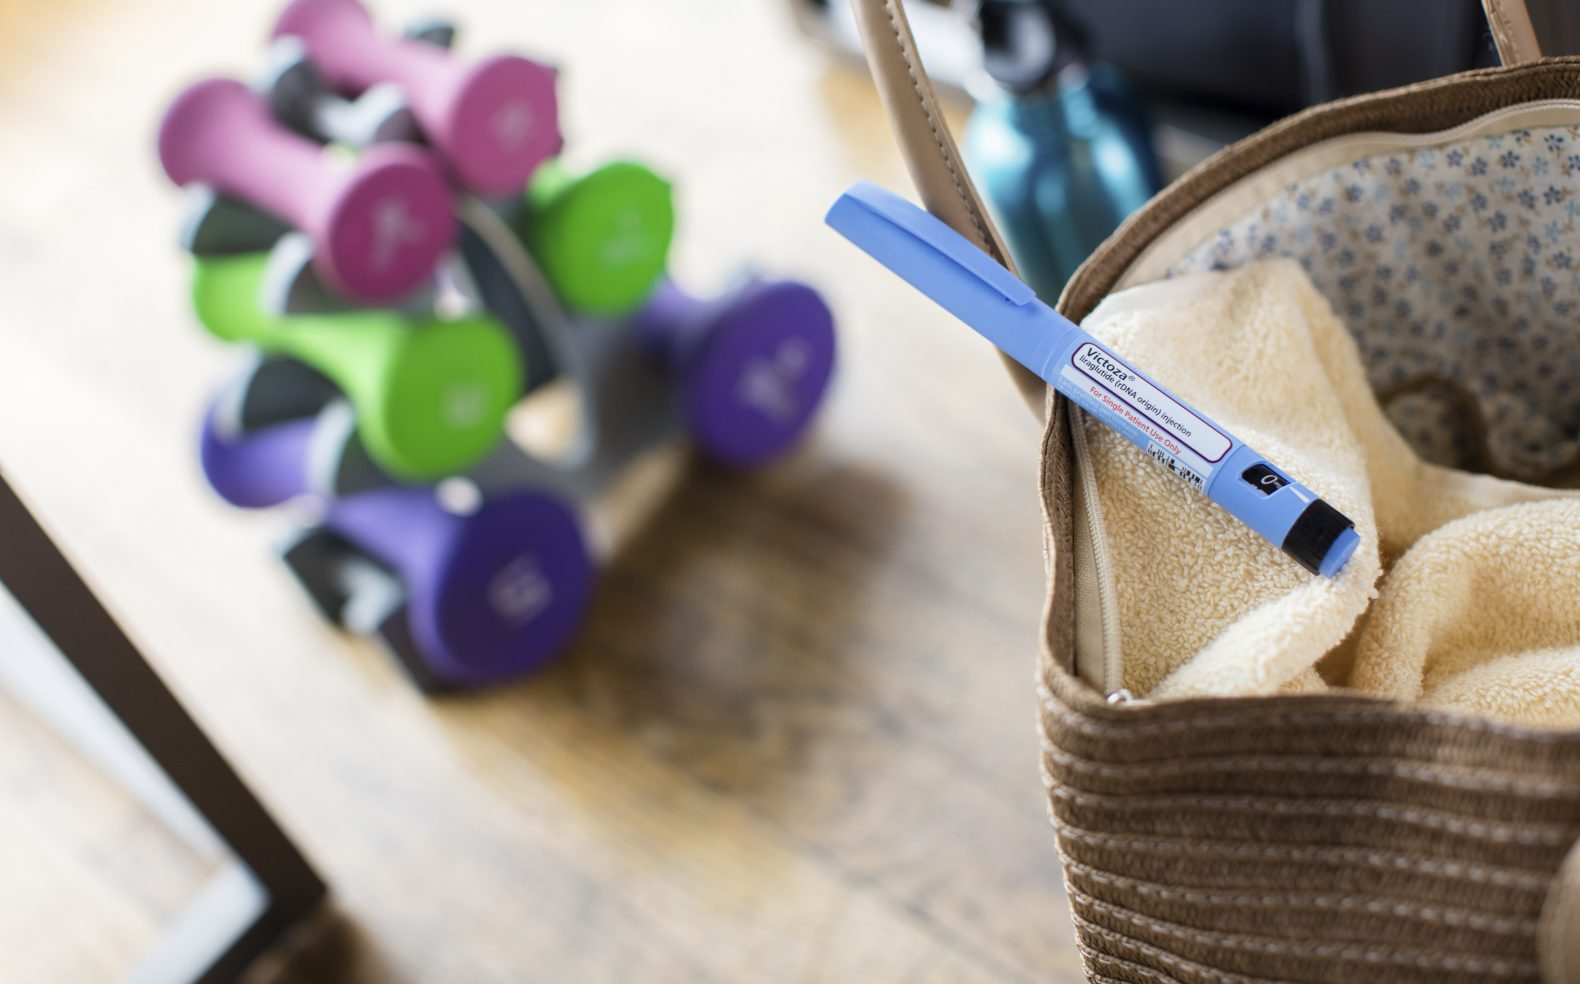 A medical diabetes pen laying on a towel in a tote bag surrounded by weights and other workout equipment.